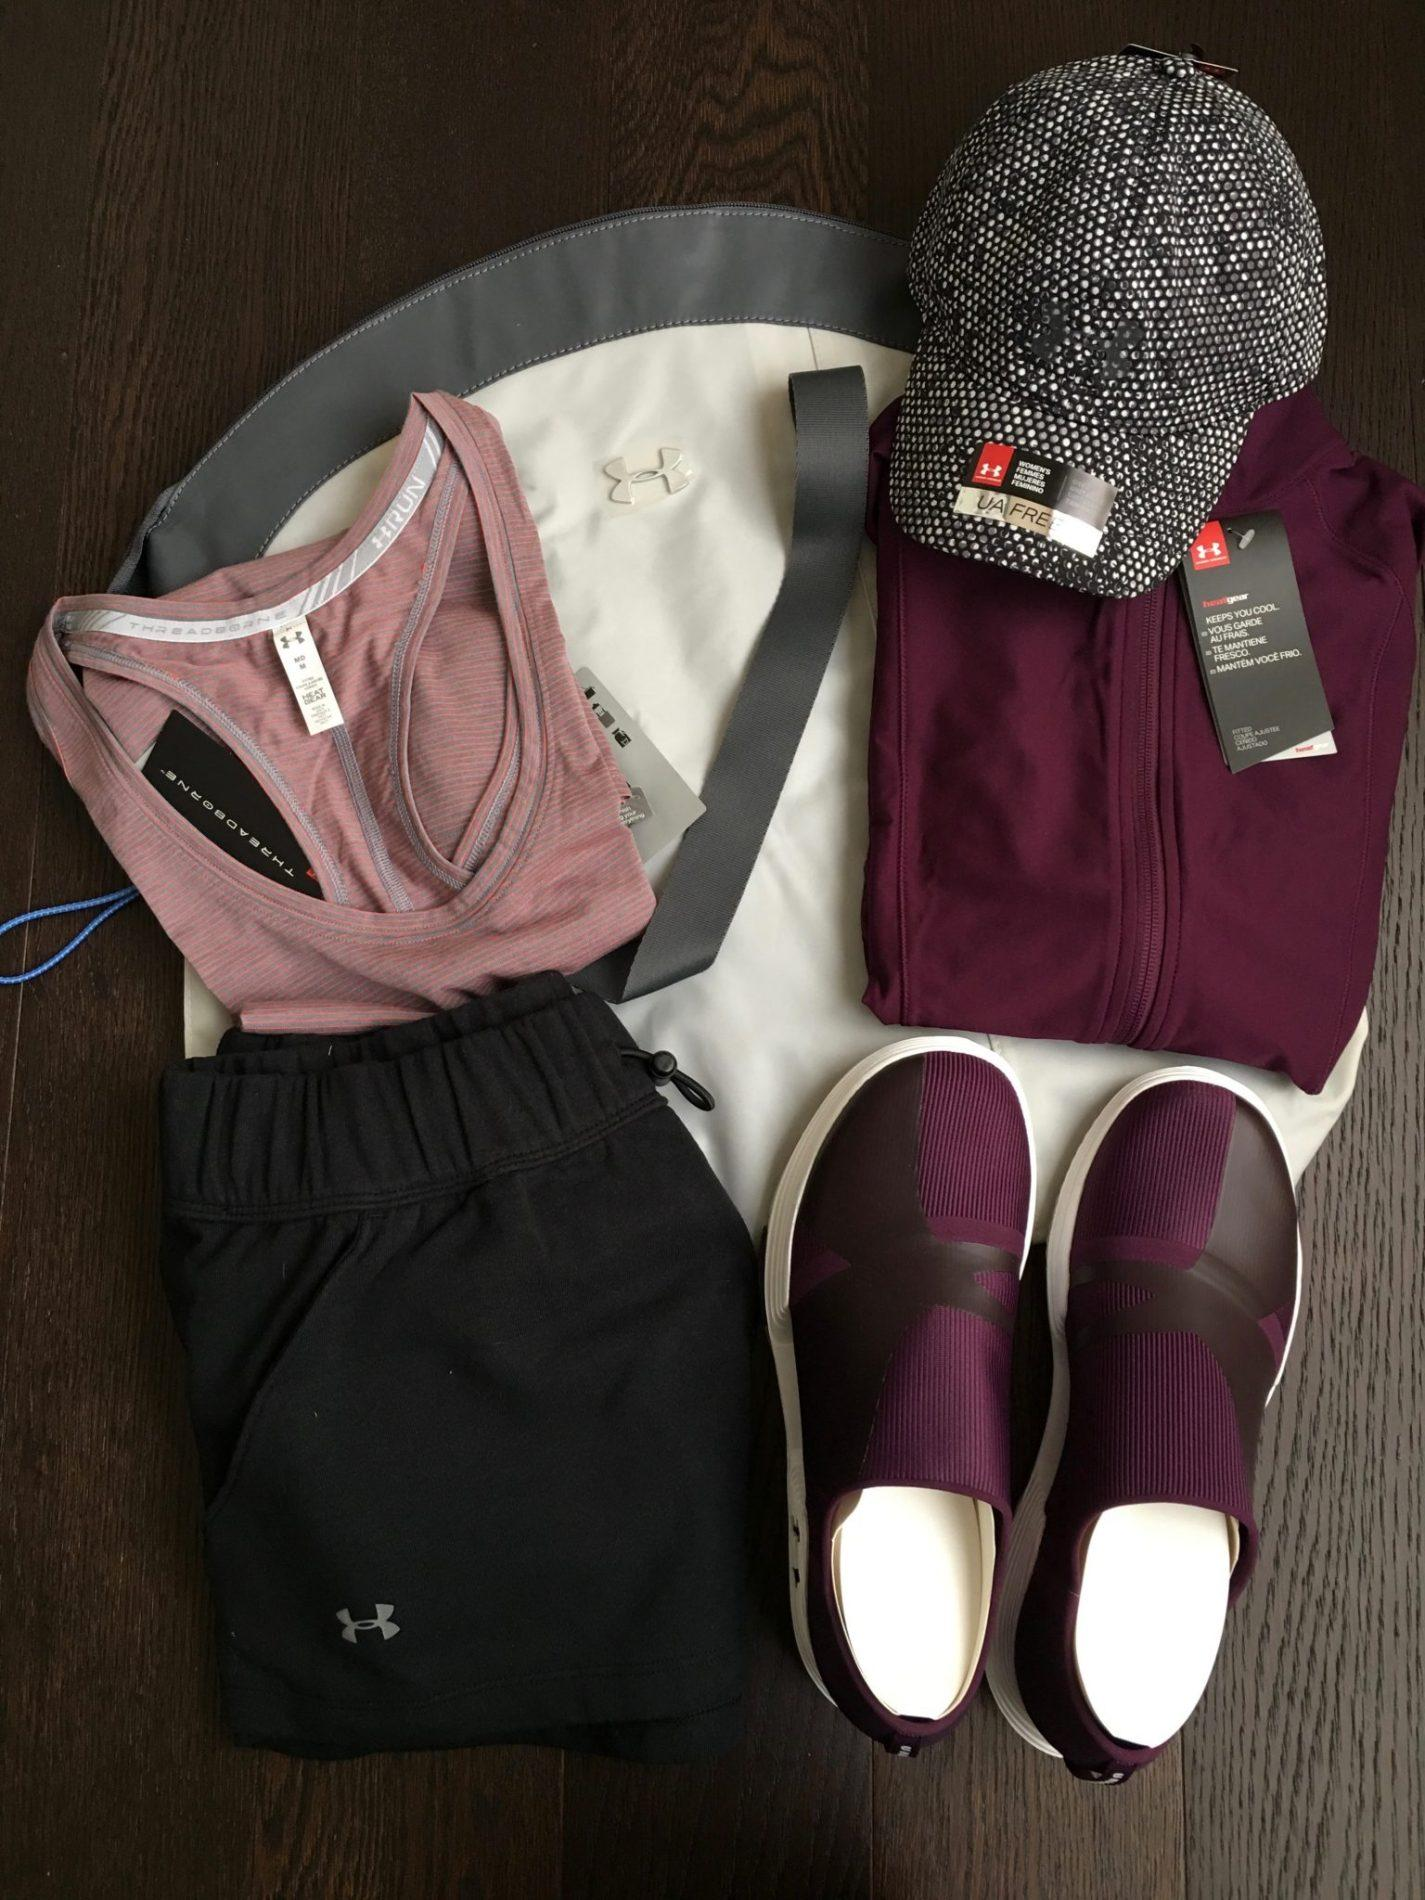 Under Armour ArmourBox Review – July 2018